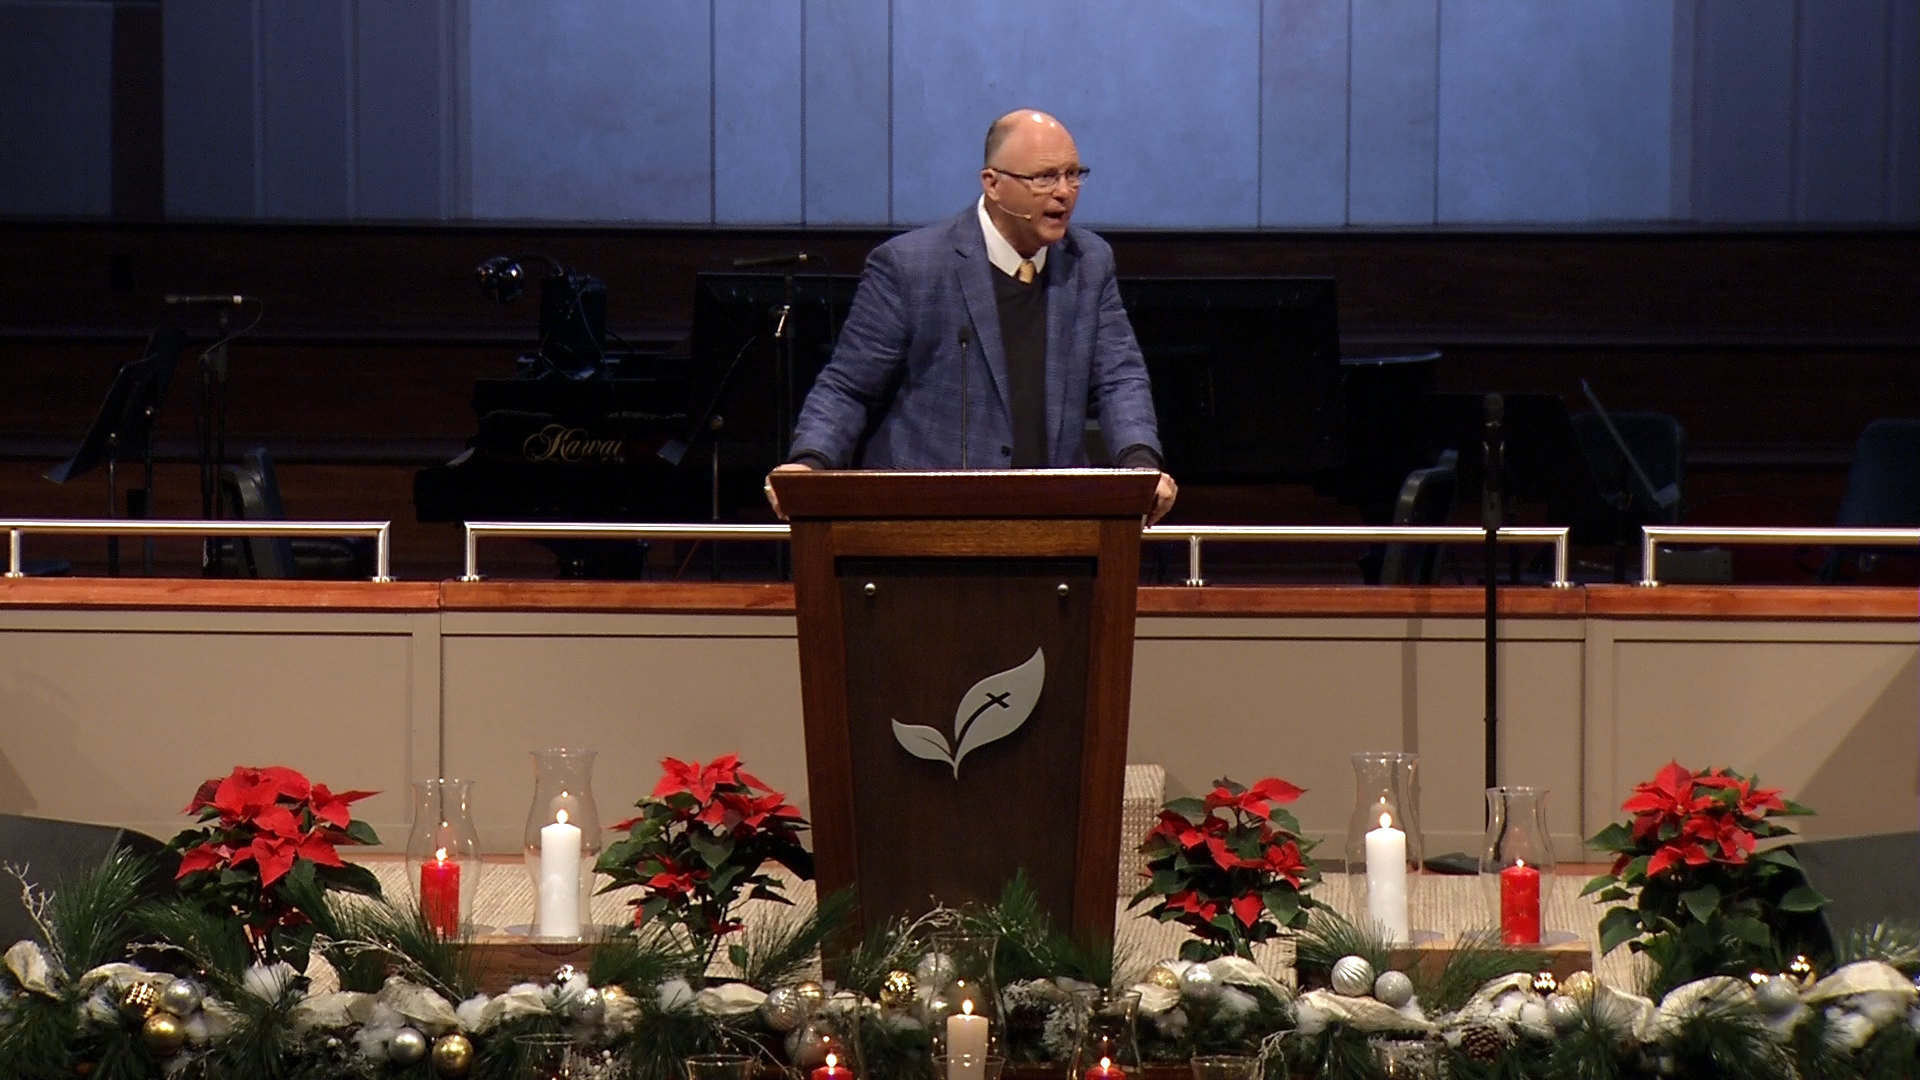 Pastor Paul Chappell: A Special Baby